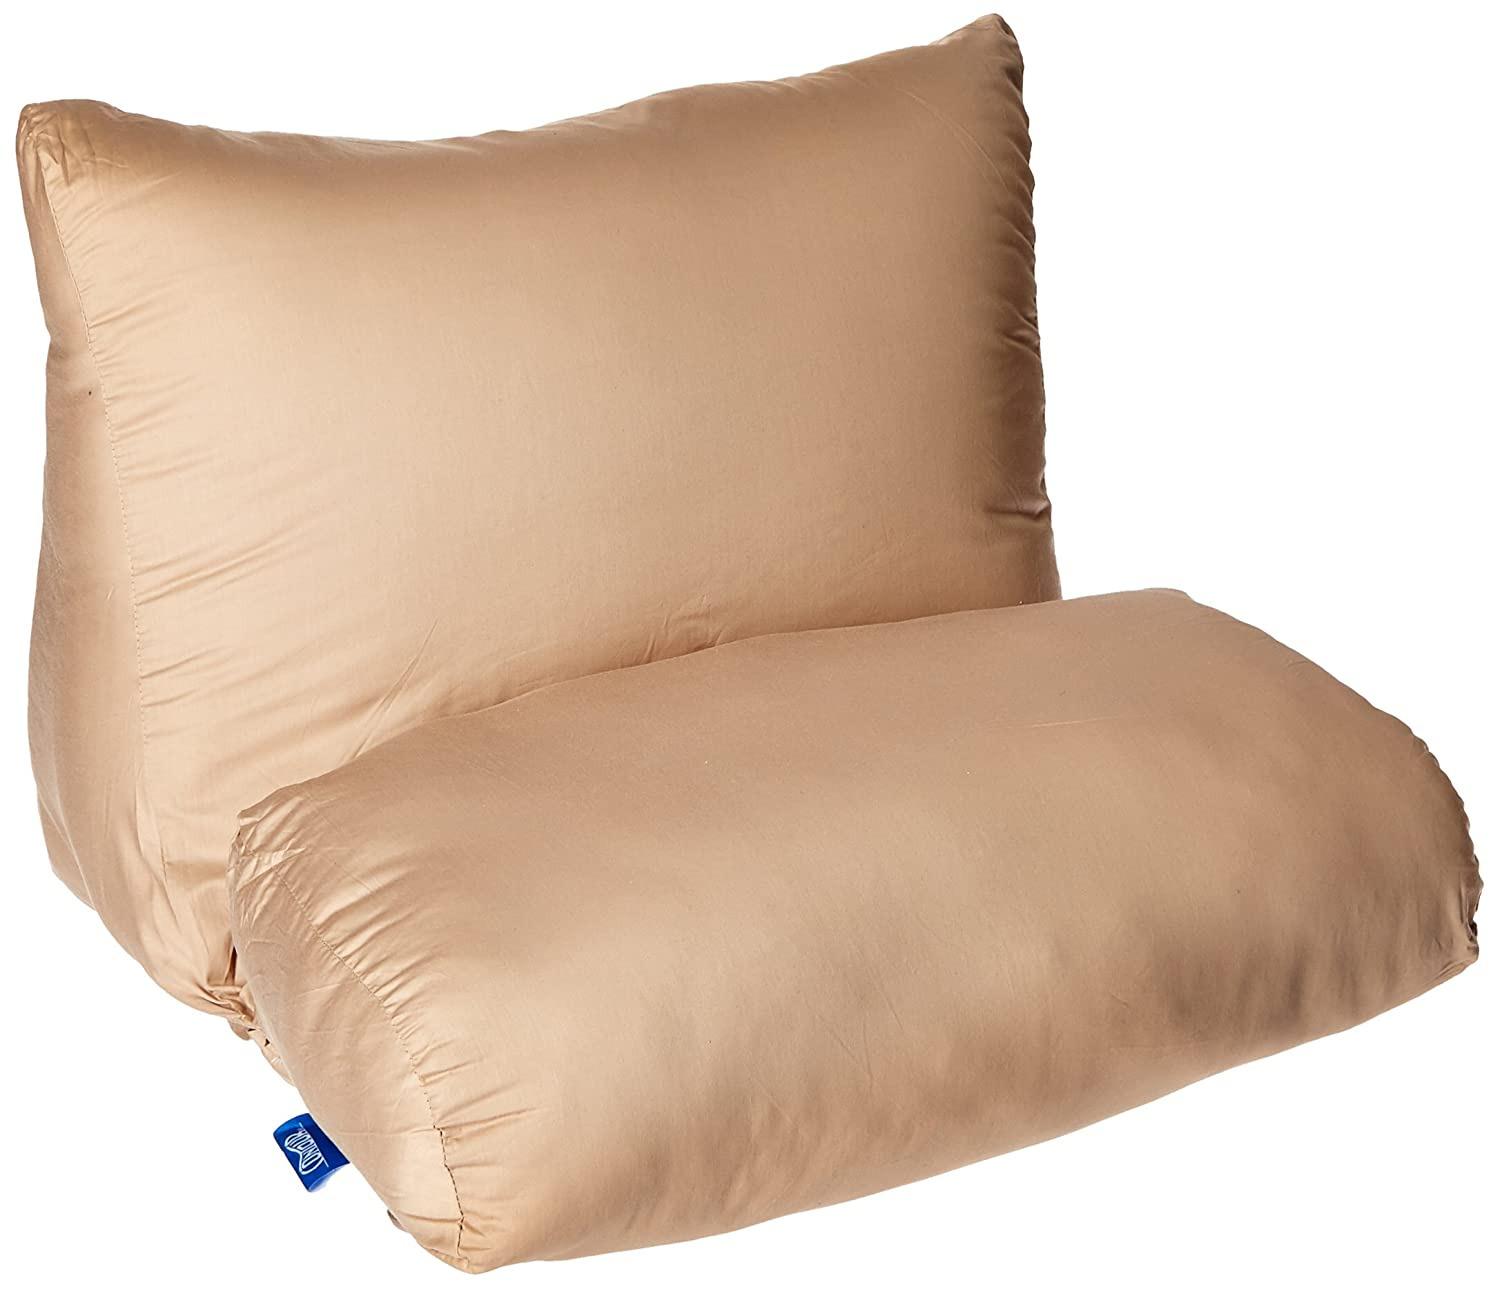 wedge flip pillow the rest waffle contour with comfort in pin temporary